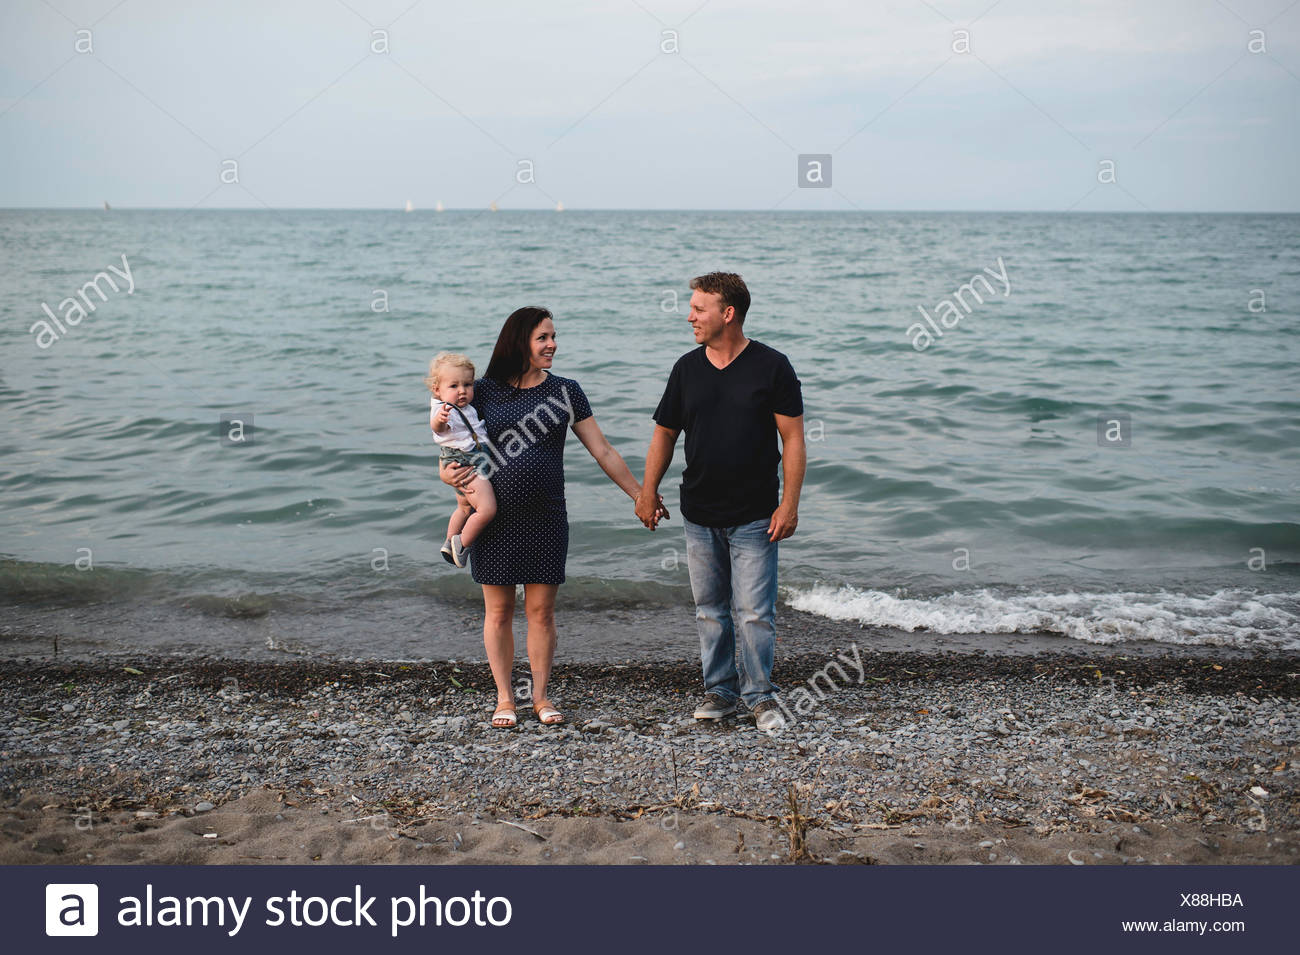 Pregnant couple at water's edge on beach with male toddler son, Lake Ontario, Canada - Stock Image